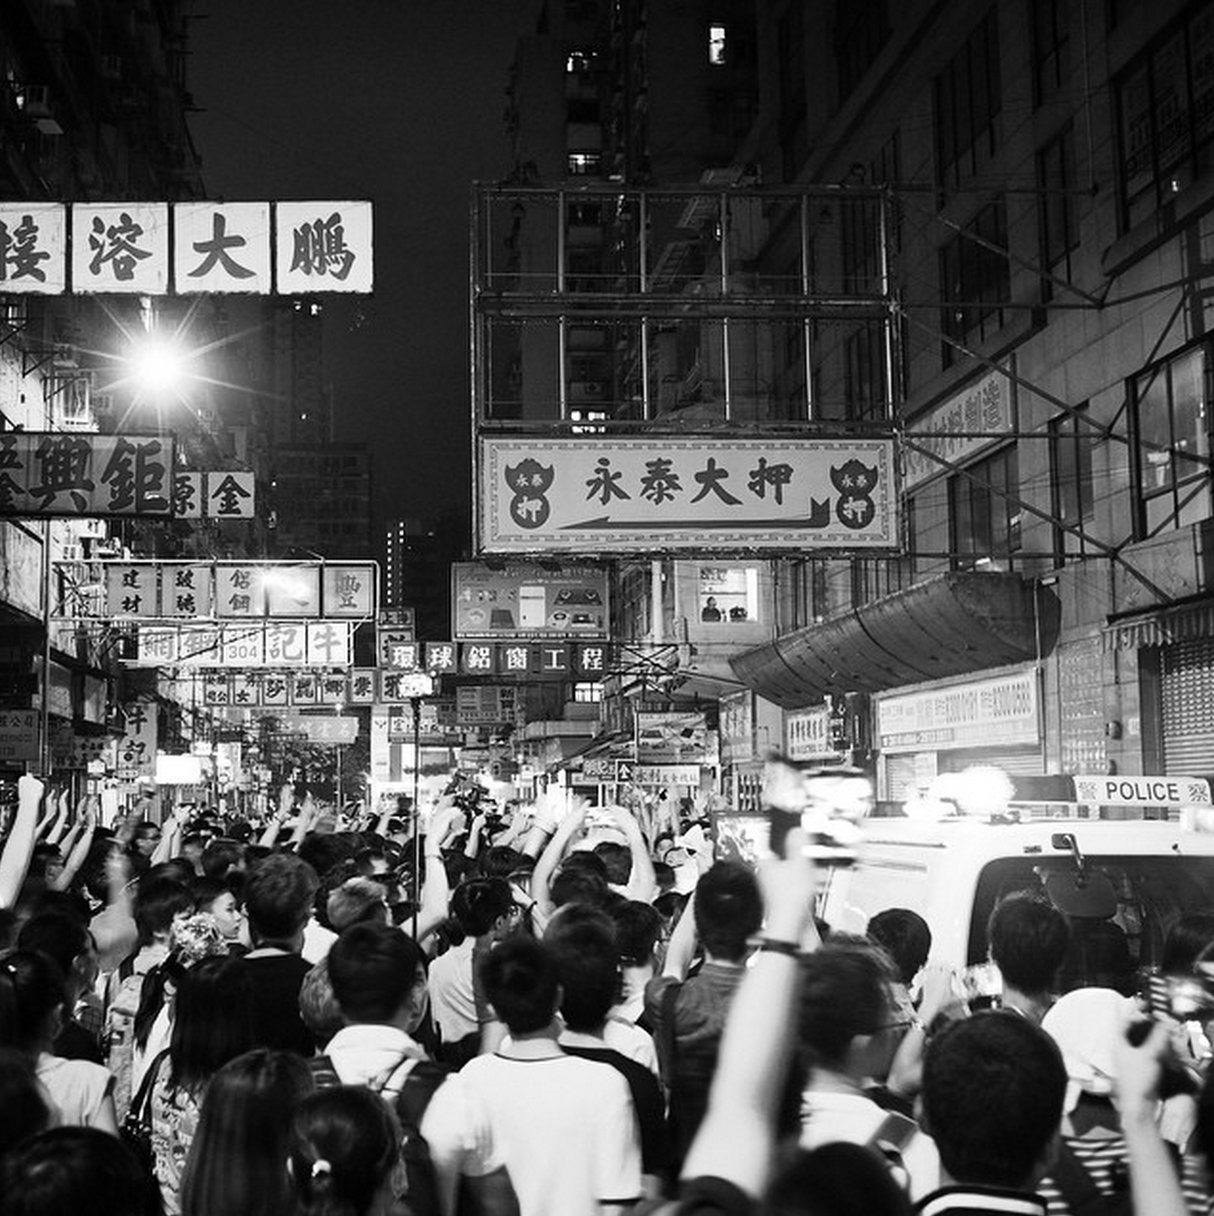 RT @verge: Instagram has reportedly been blocked in mainland China as protests in Hong Kong intensify http://t.co/E8CFxJMghV http://t.co/tI?